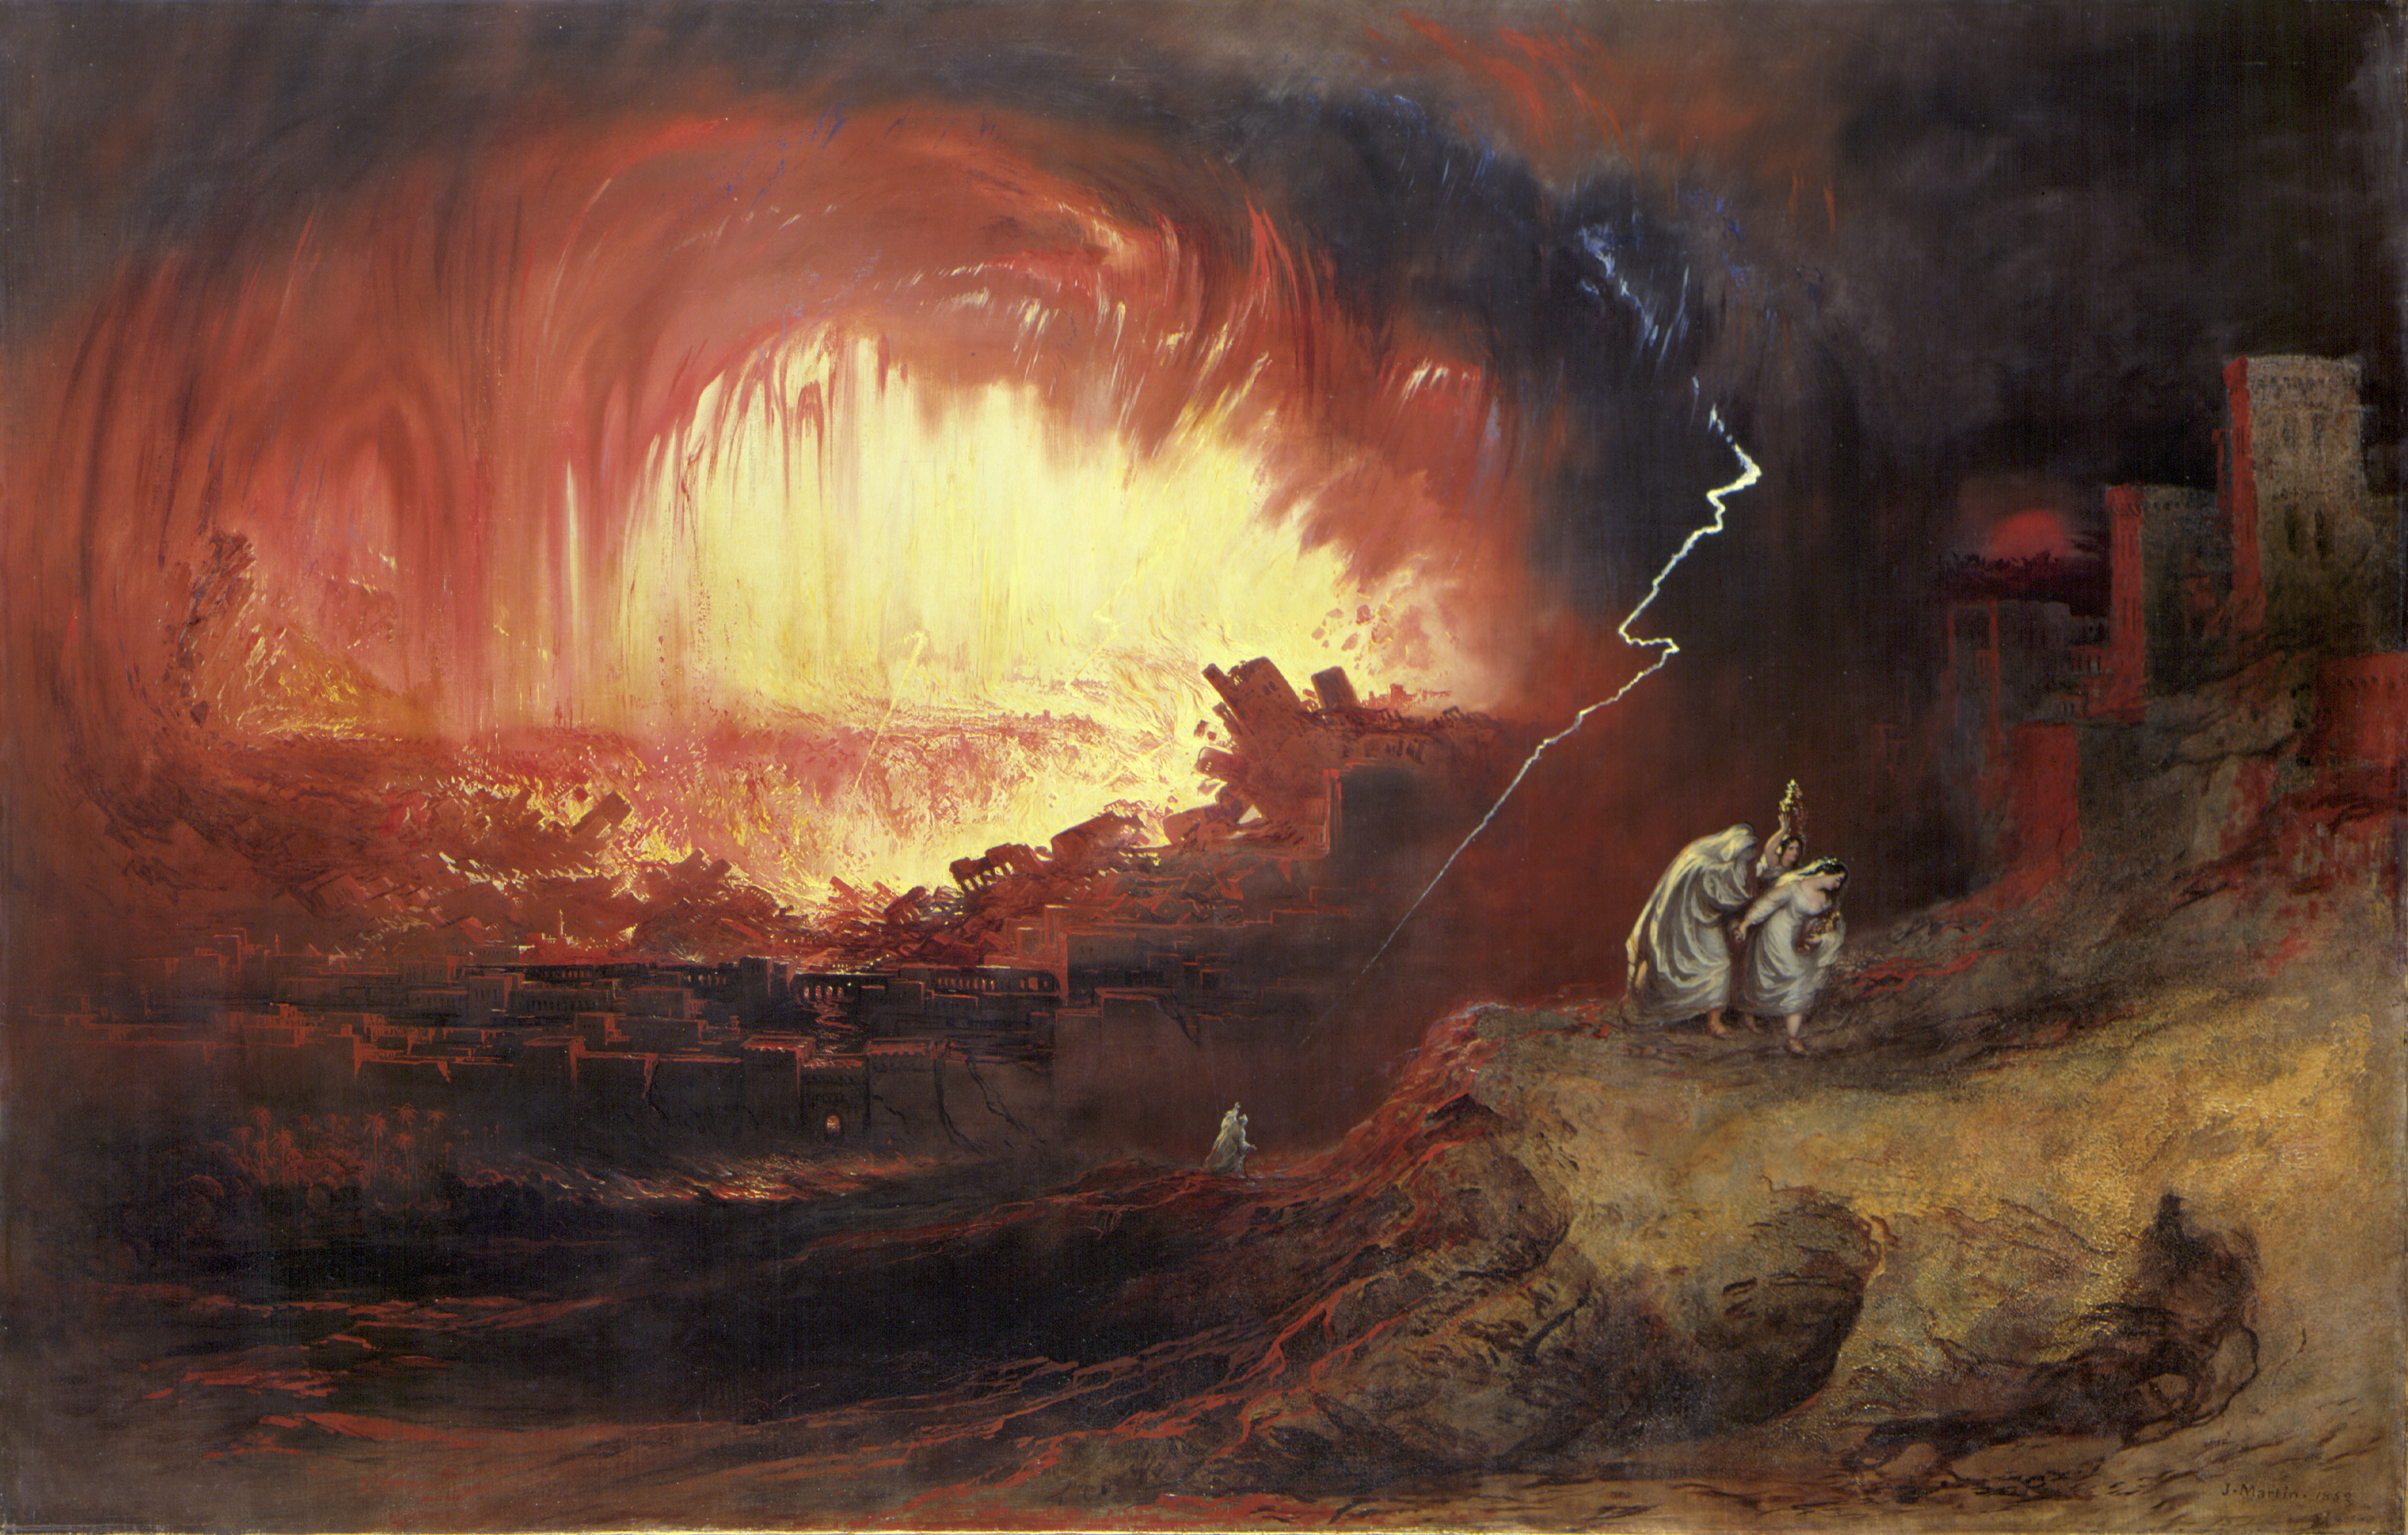 The Destruction of Sodom and Gomorrah - Wikipedia